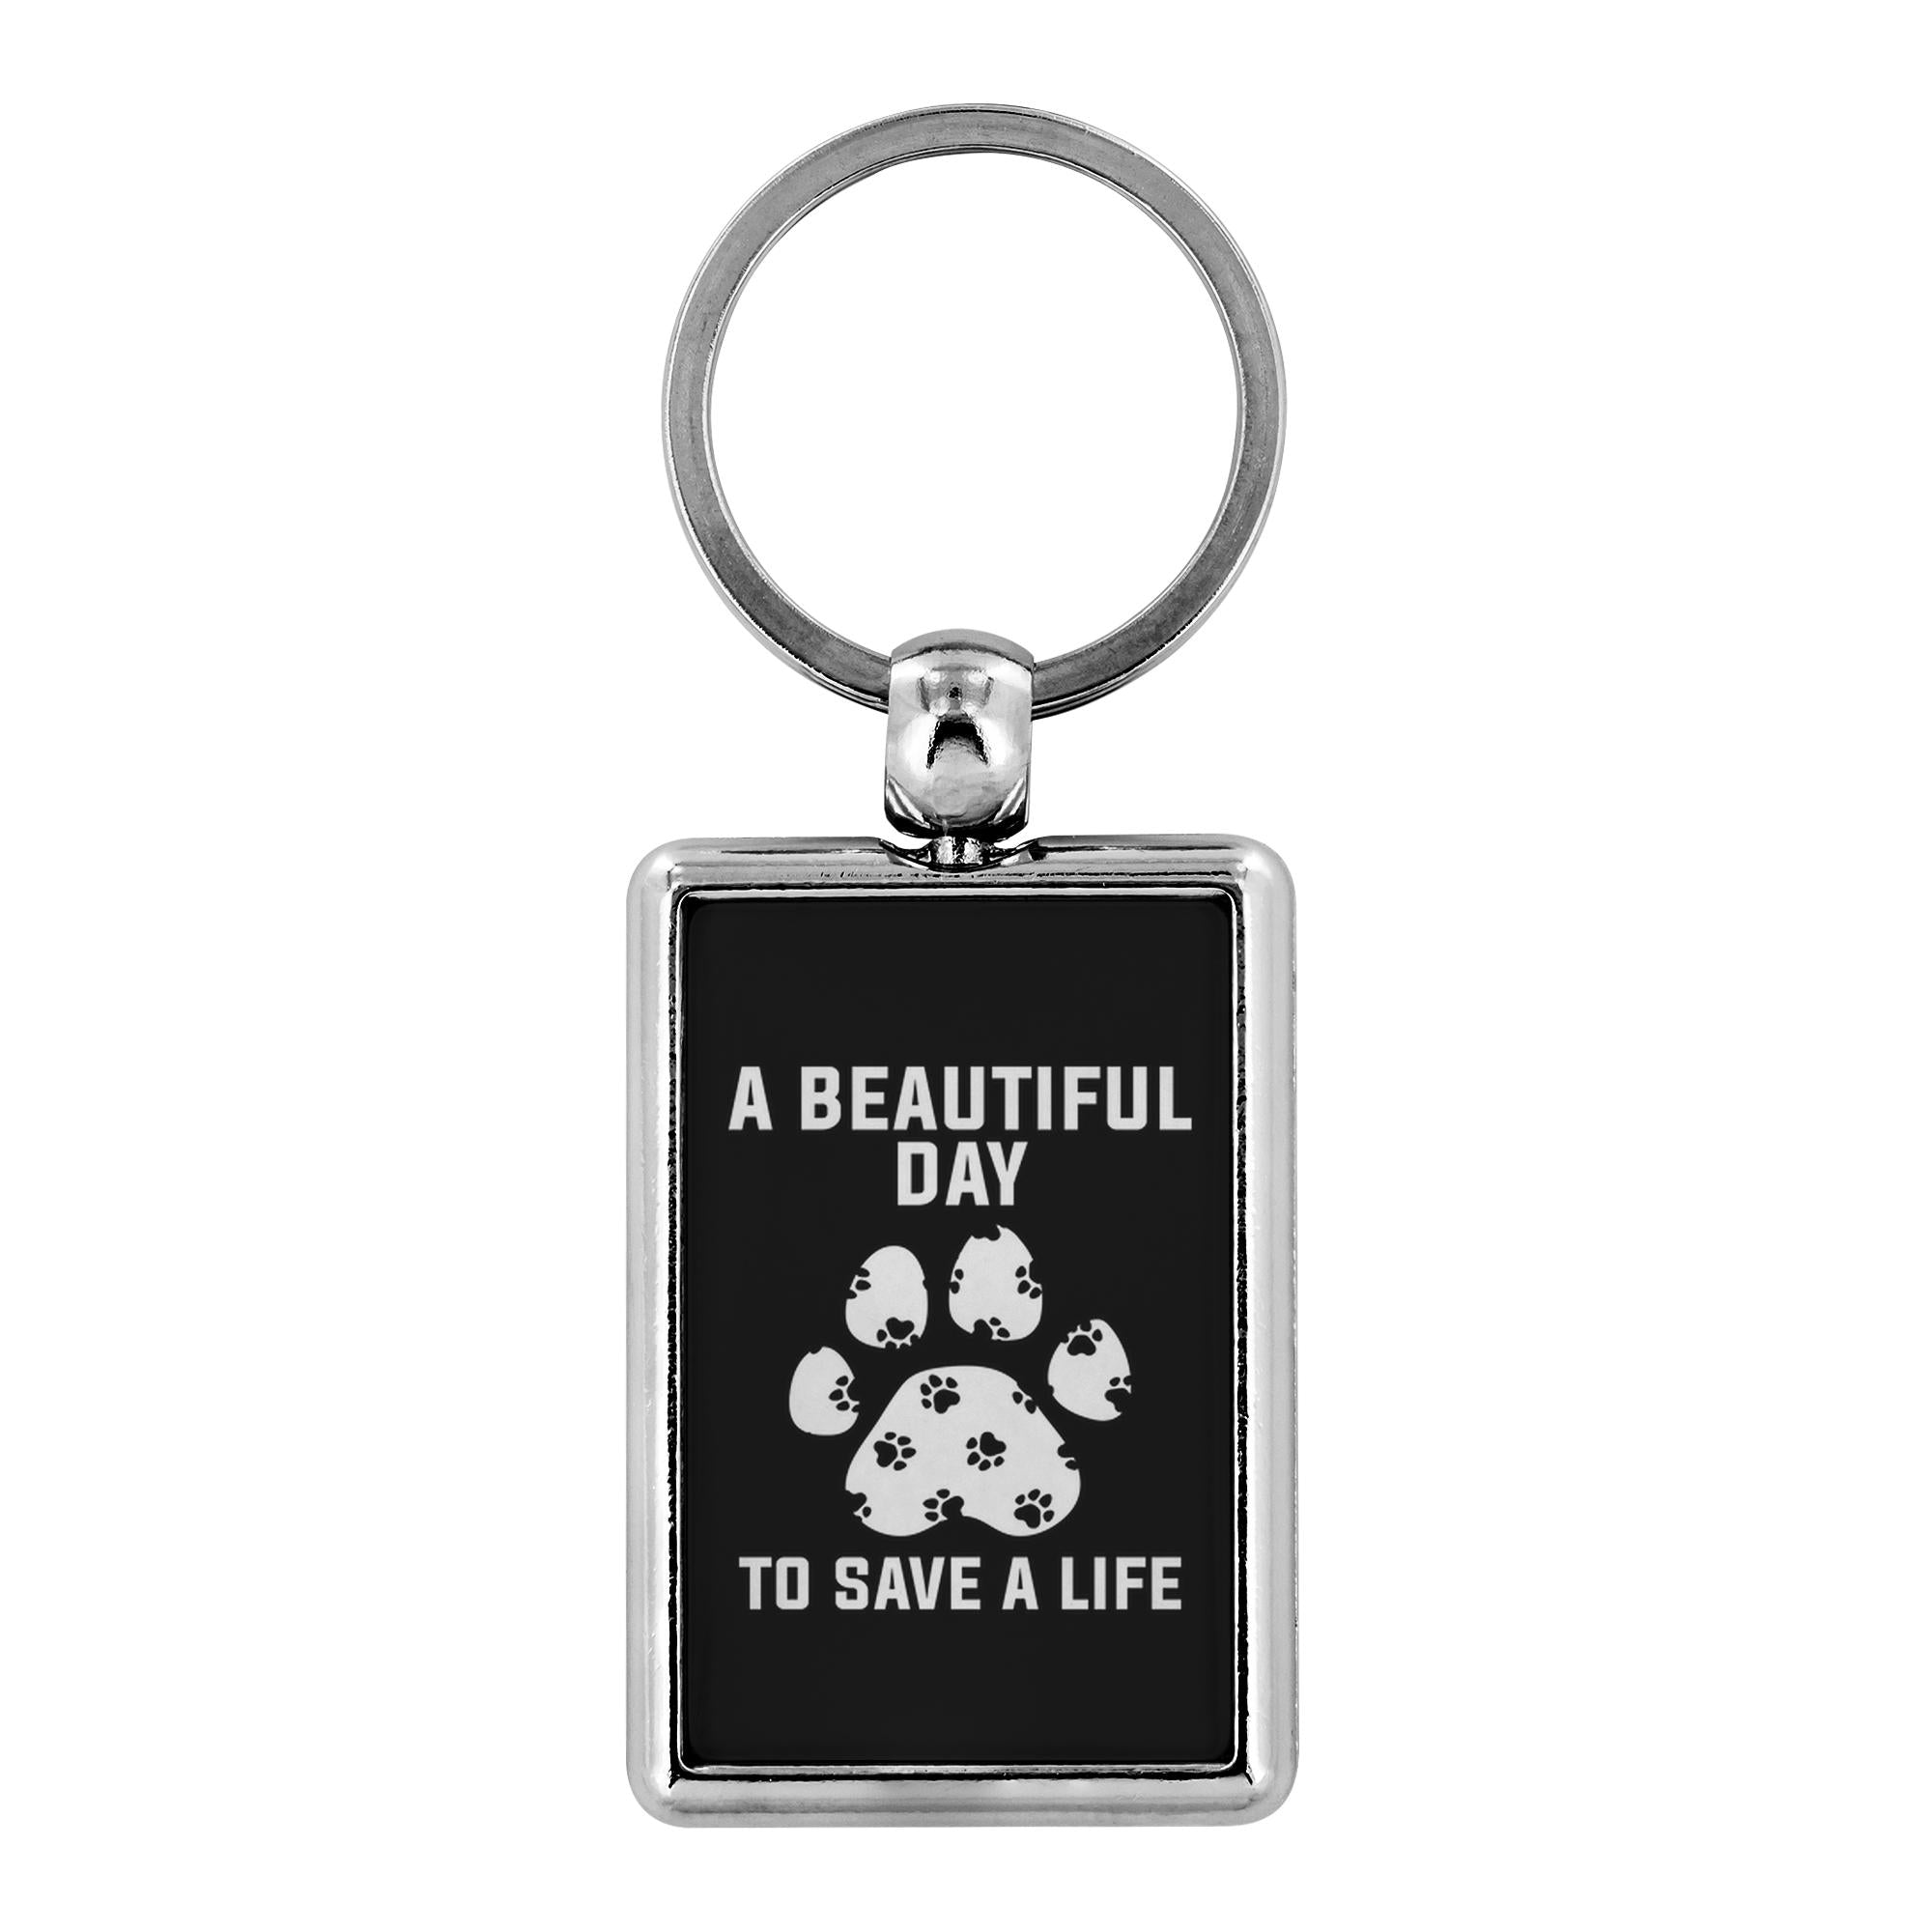 Veterinary- A beautiful day to save a life - Keychain-Keychain-I love Veterinary